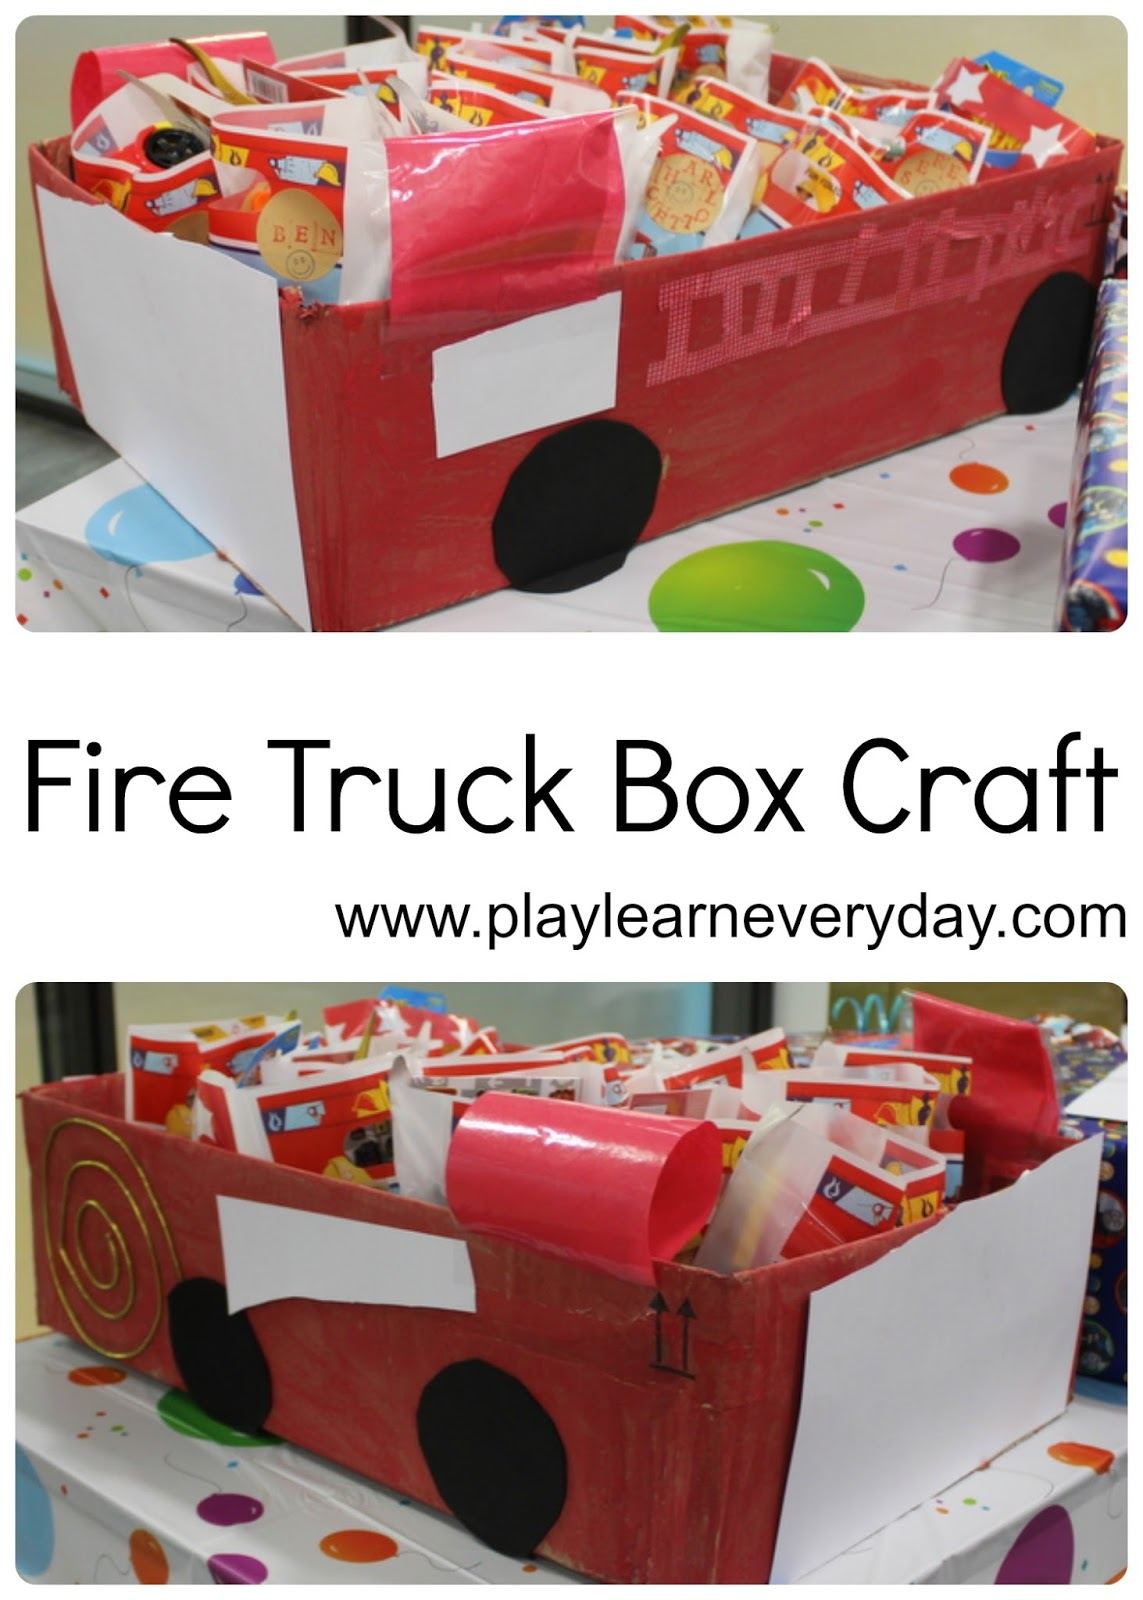 Fire Truck Box Craft - Play and Learn Every Day